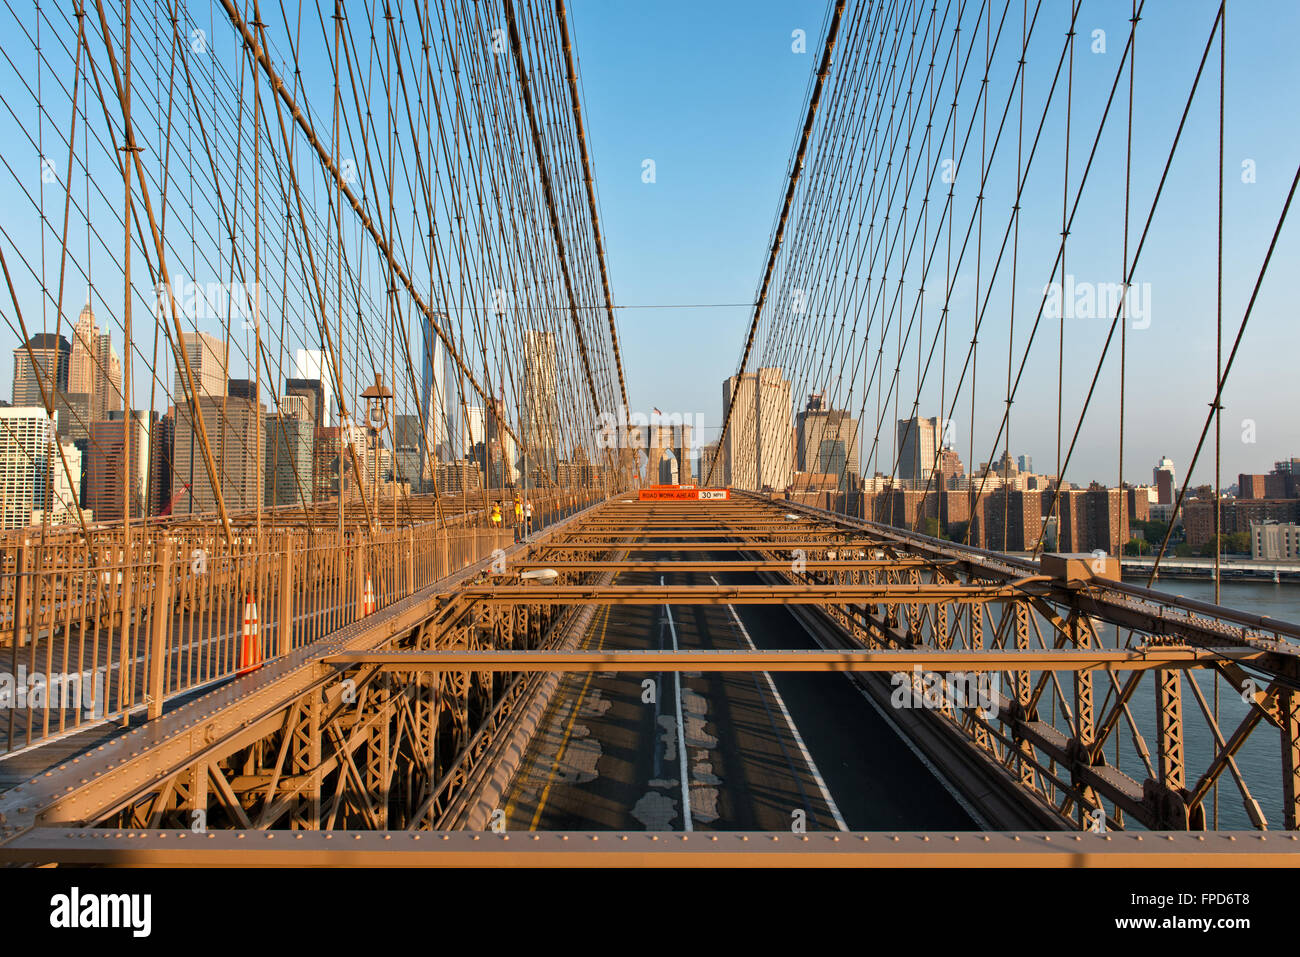 No Traffic on Brooklyn Bridge with Detail of Girders and Support Cables Looking Toward manhattan City Skyline at - Stock Image